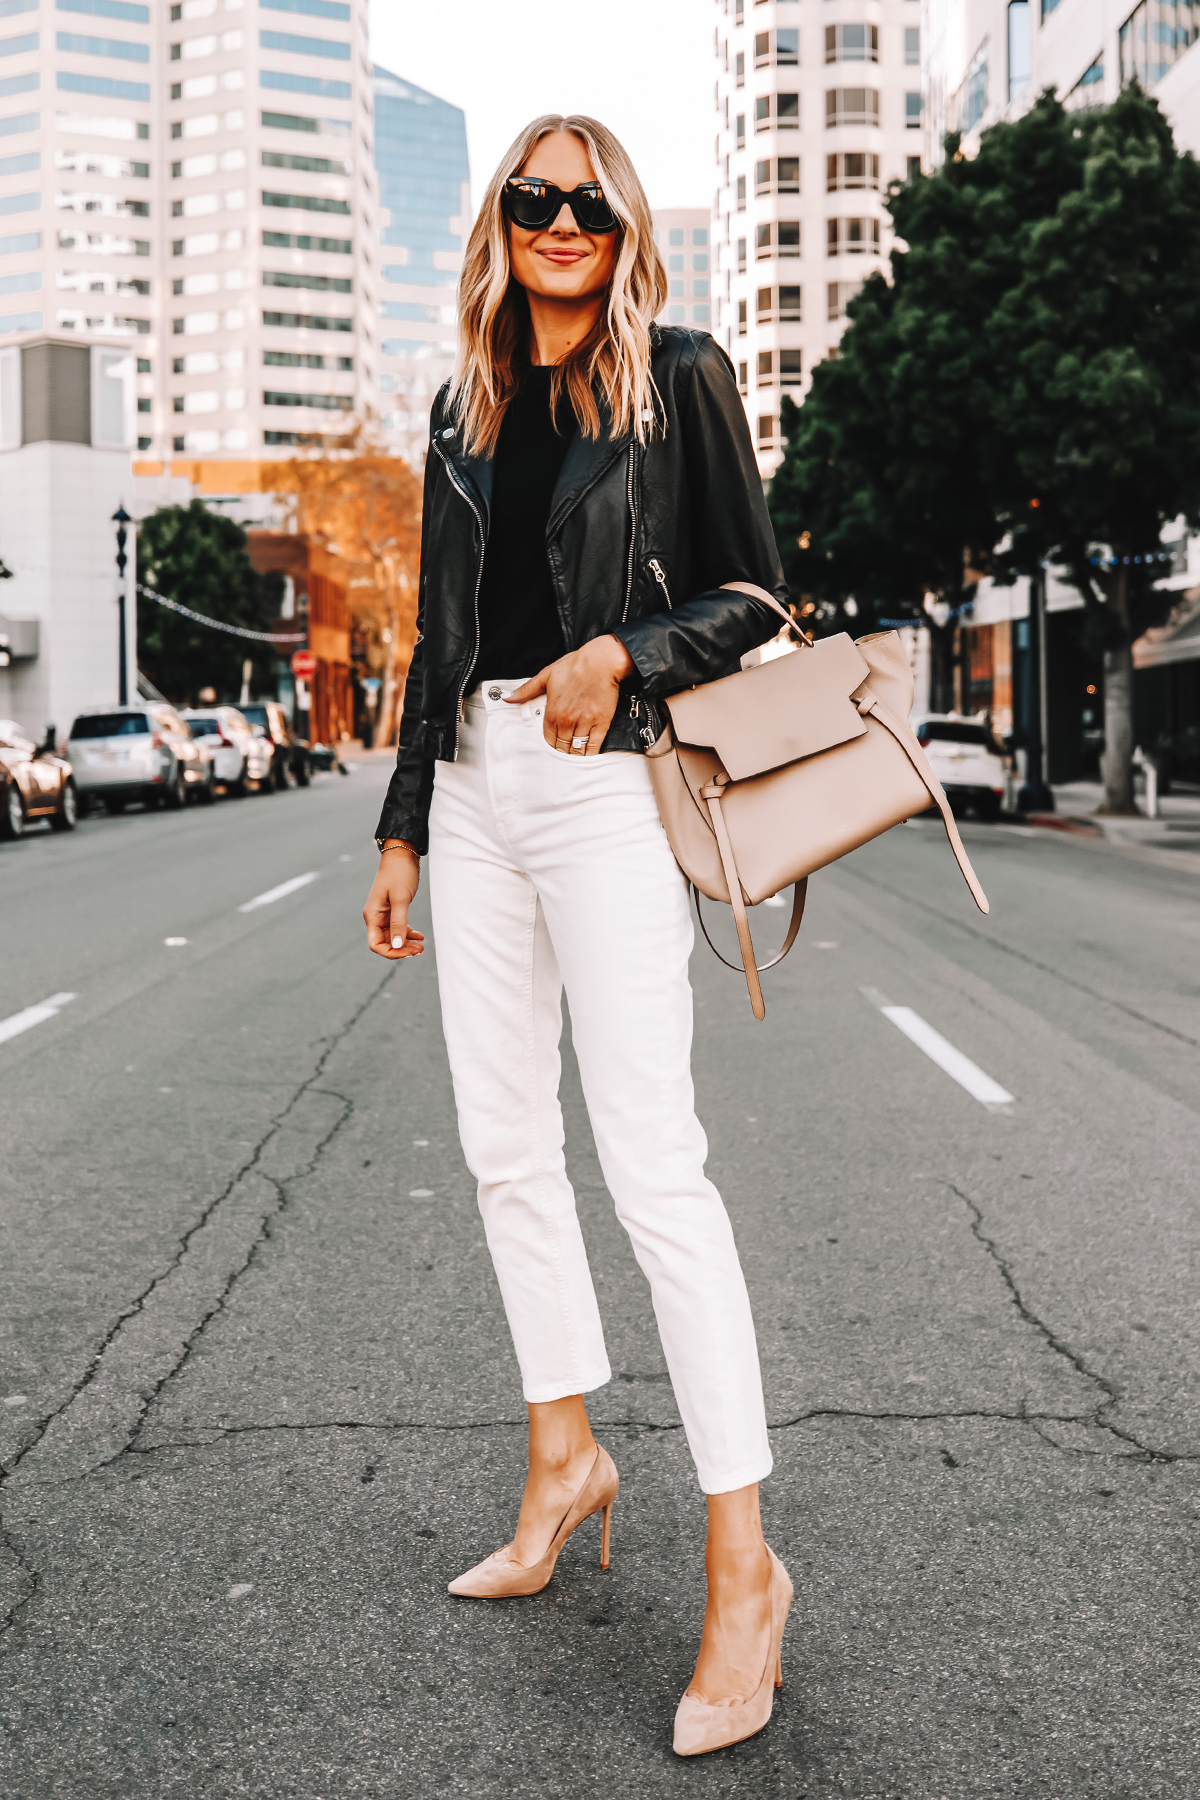 Fashion Jackson Wearing Madewell Black Leather Jacket Everlane White Jeans Nude Pumps Celine Mini Belt Bag